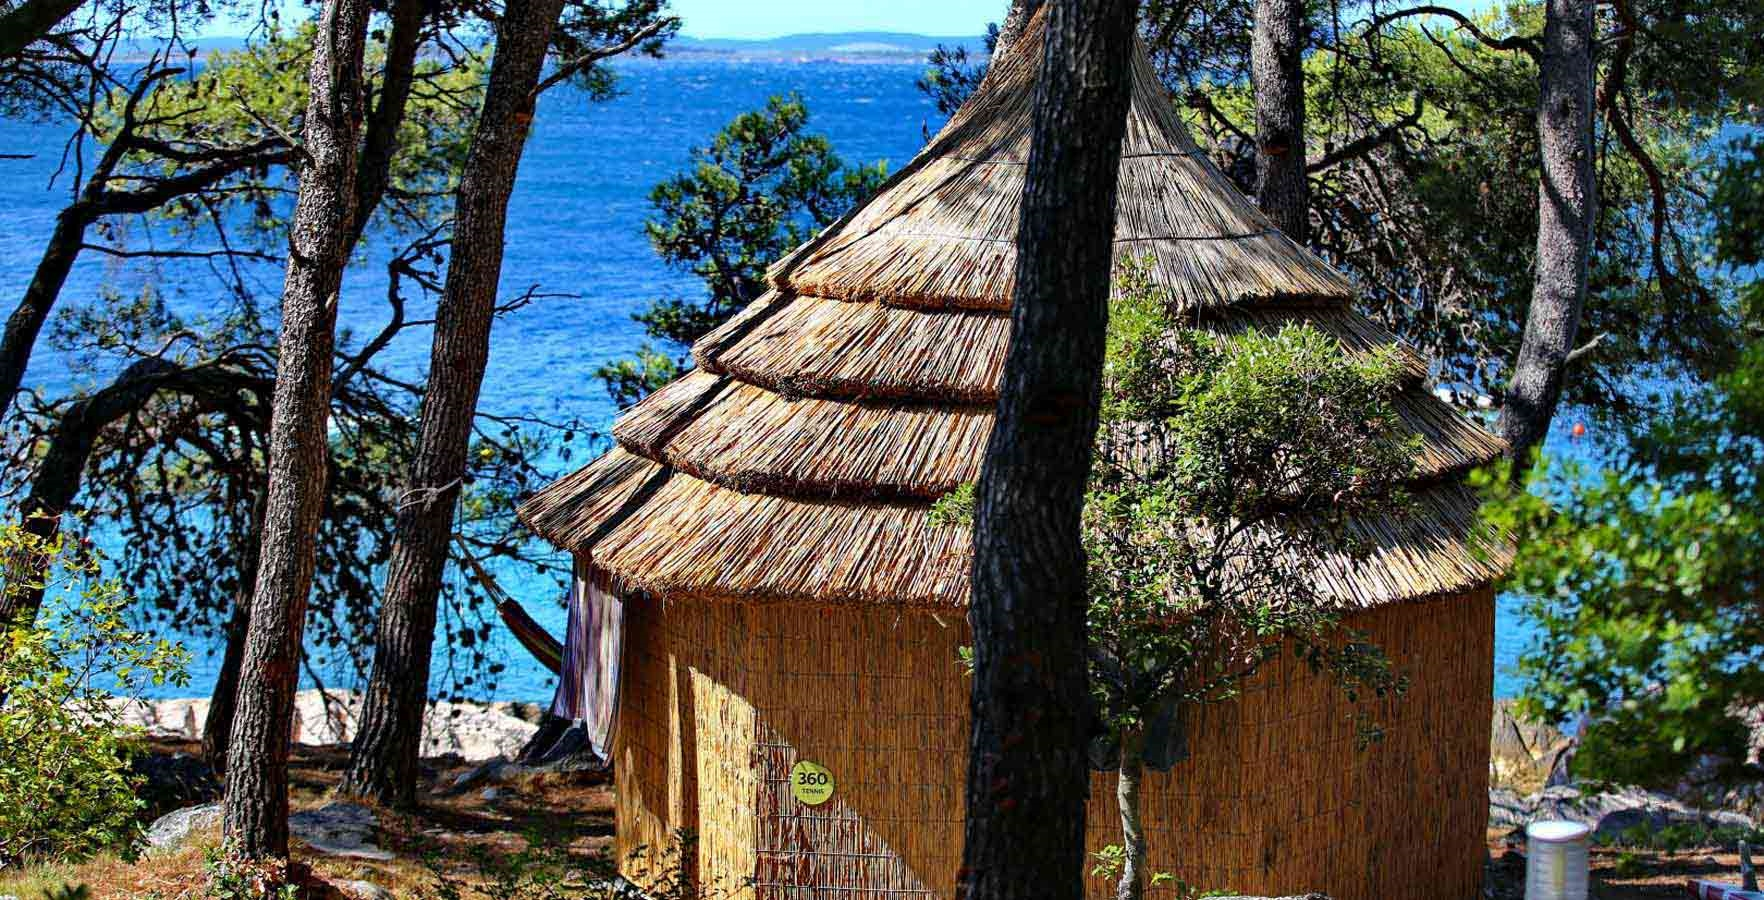 Pine Beach Pakoštane - accommodatie in Kroatië